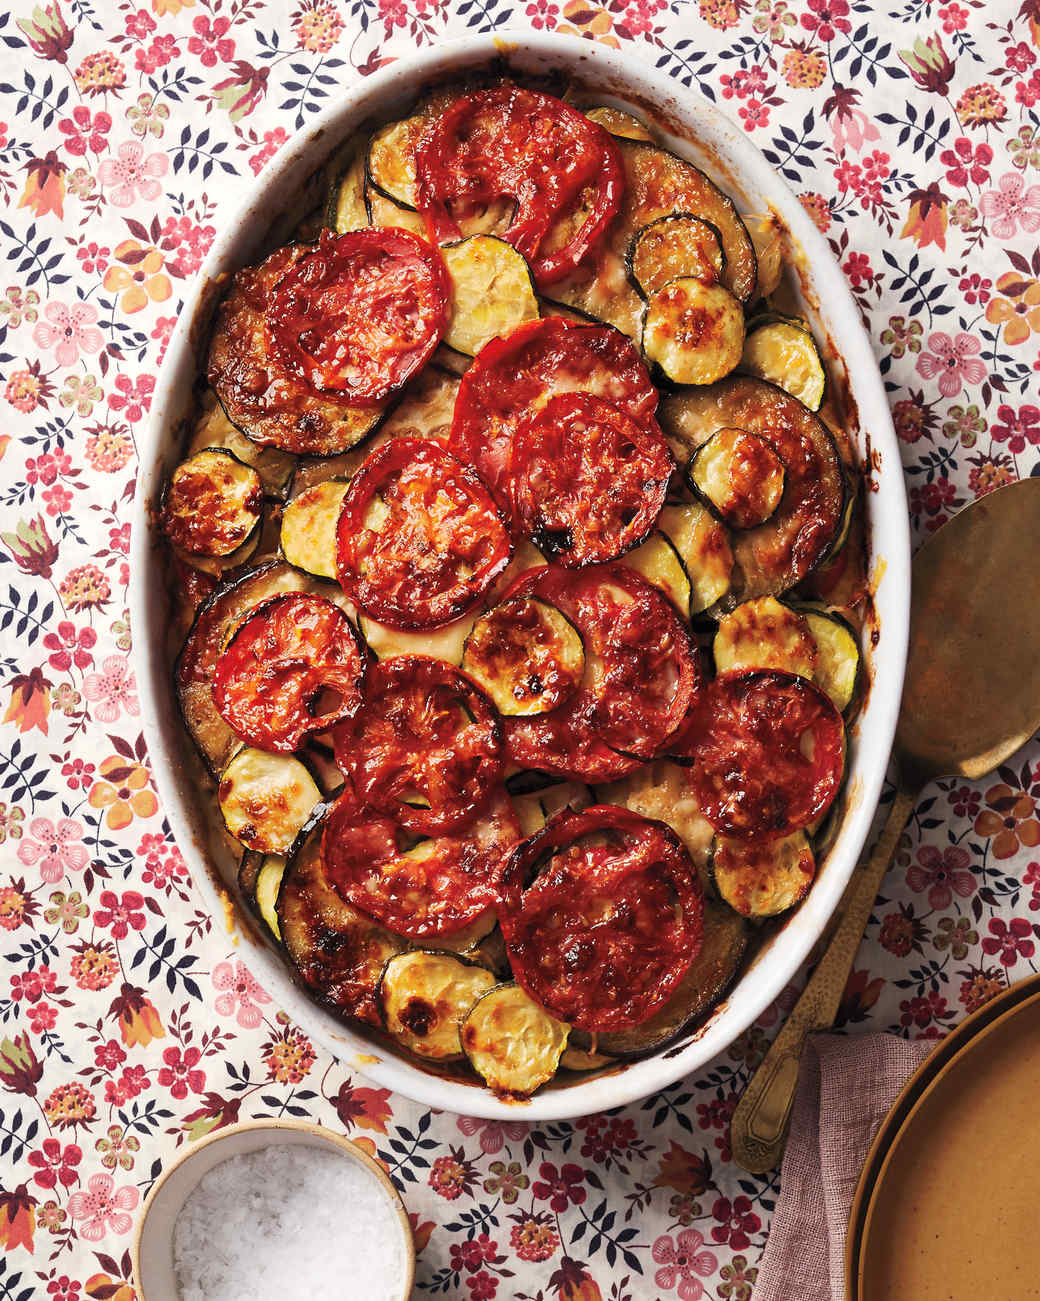 25 vegetable casserole recipes that are guaranteed crowd-pleasers